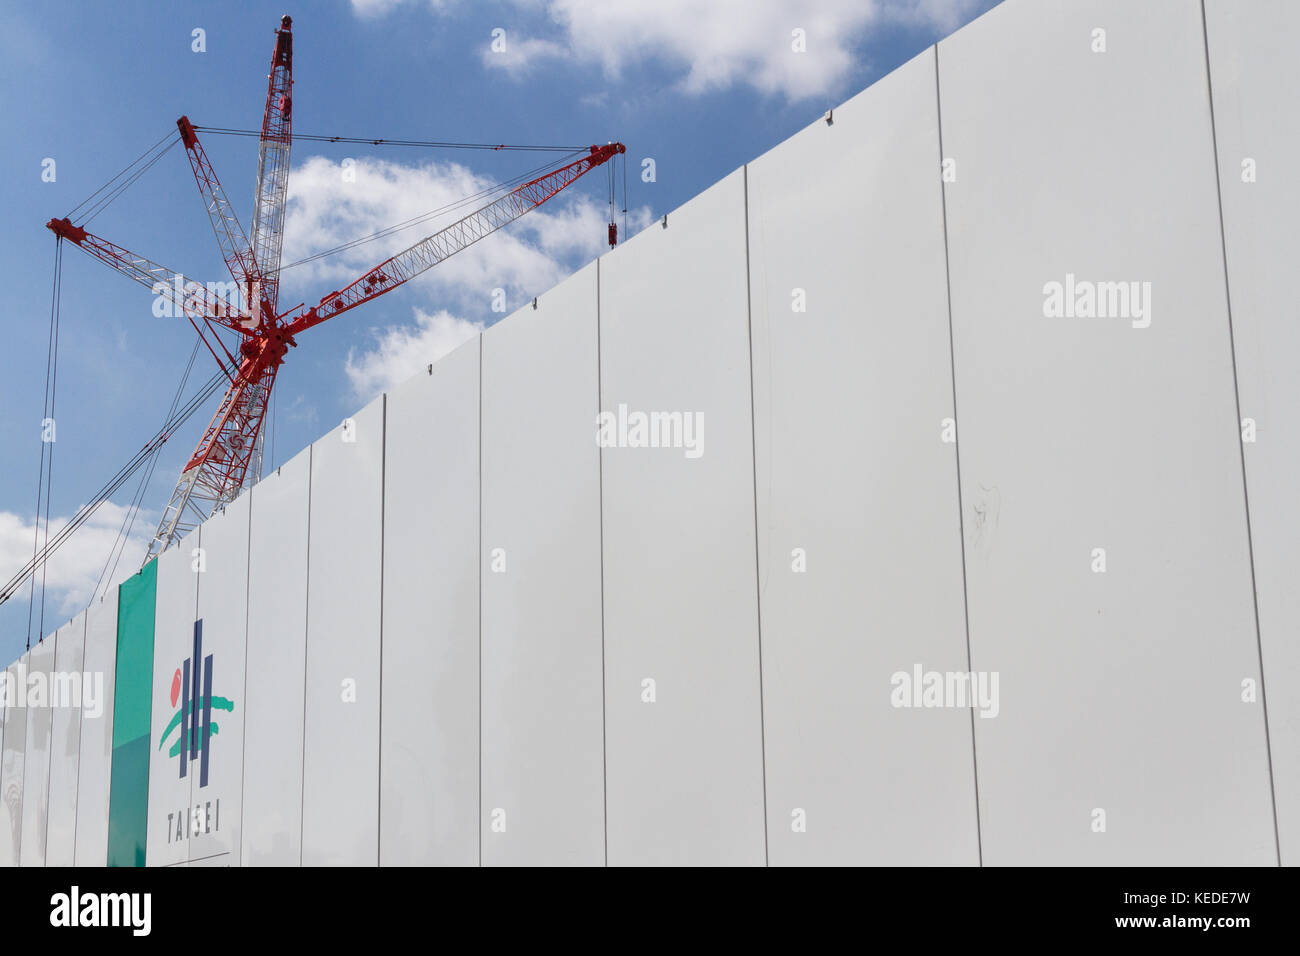 A cane above a wall with the Taisei Construction company name and logo on it at the construction site of the new - Stock Image